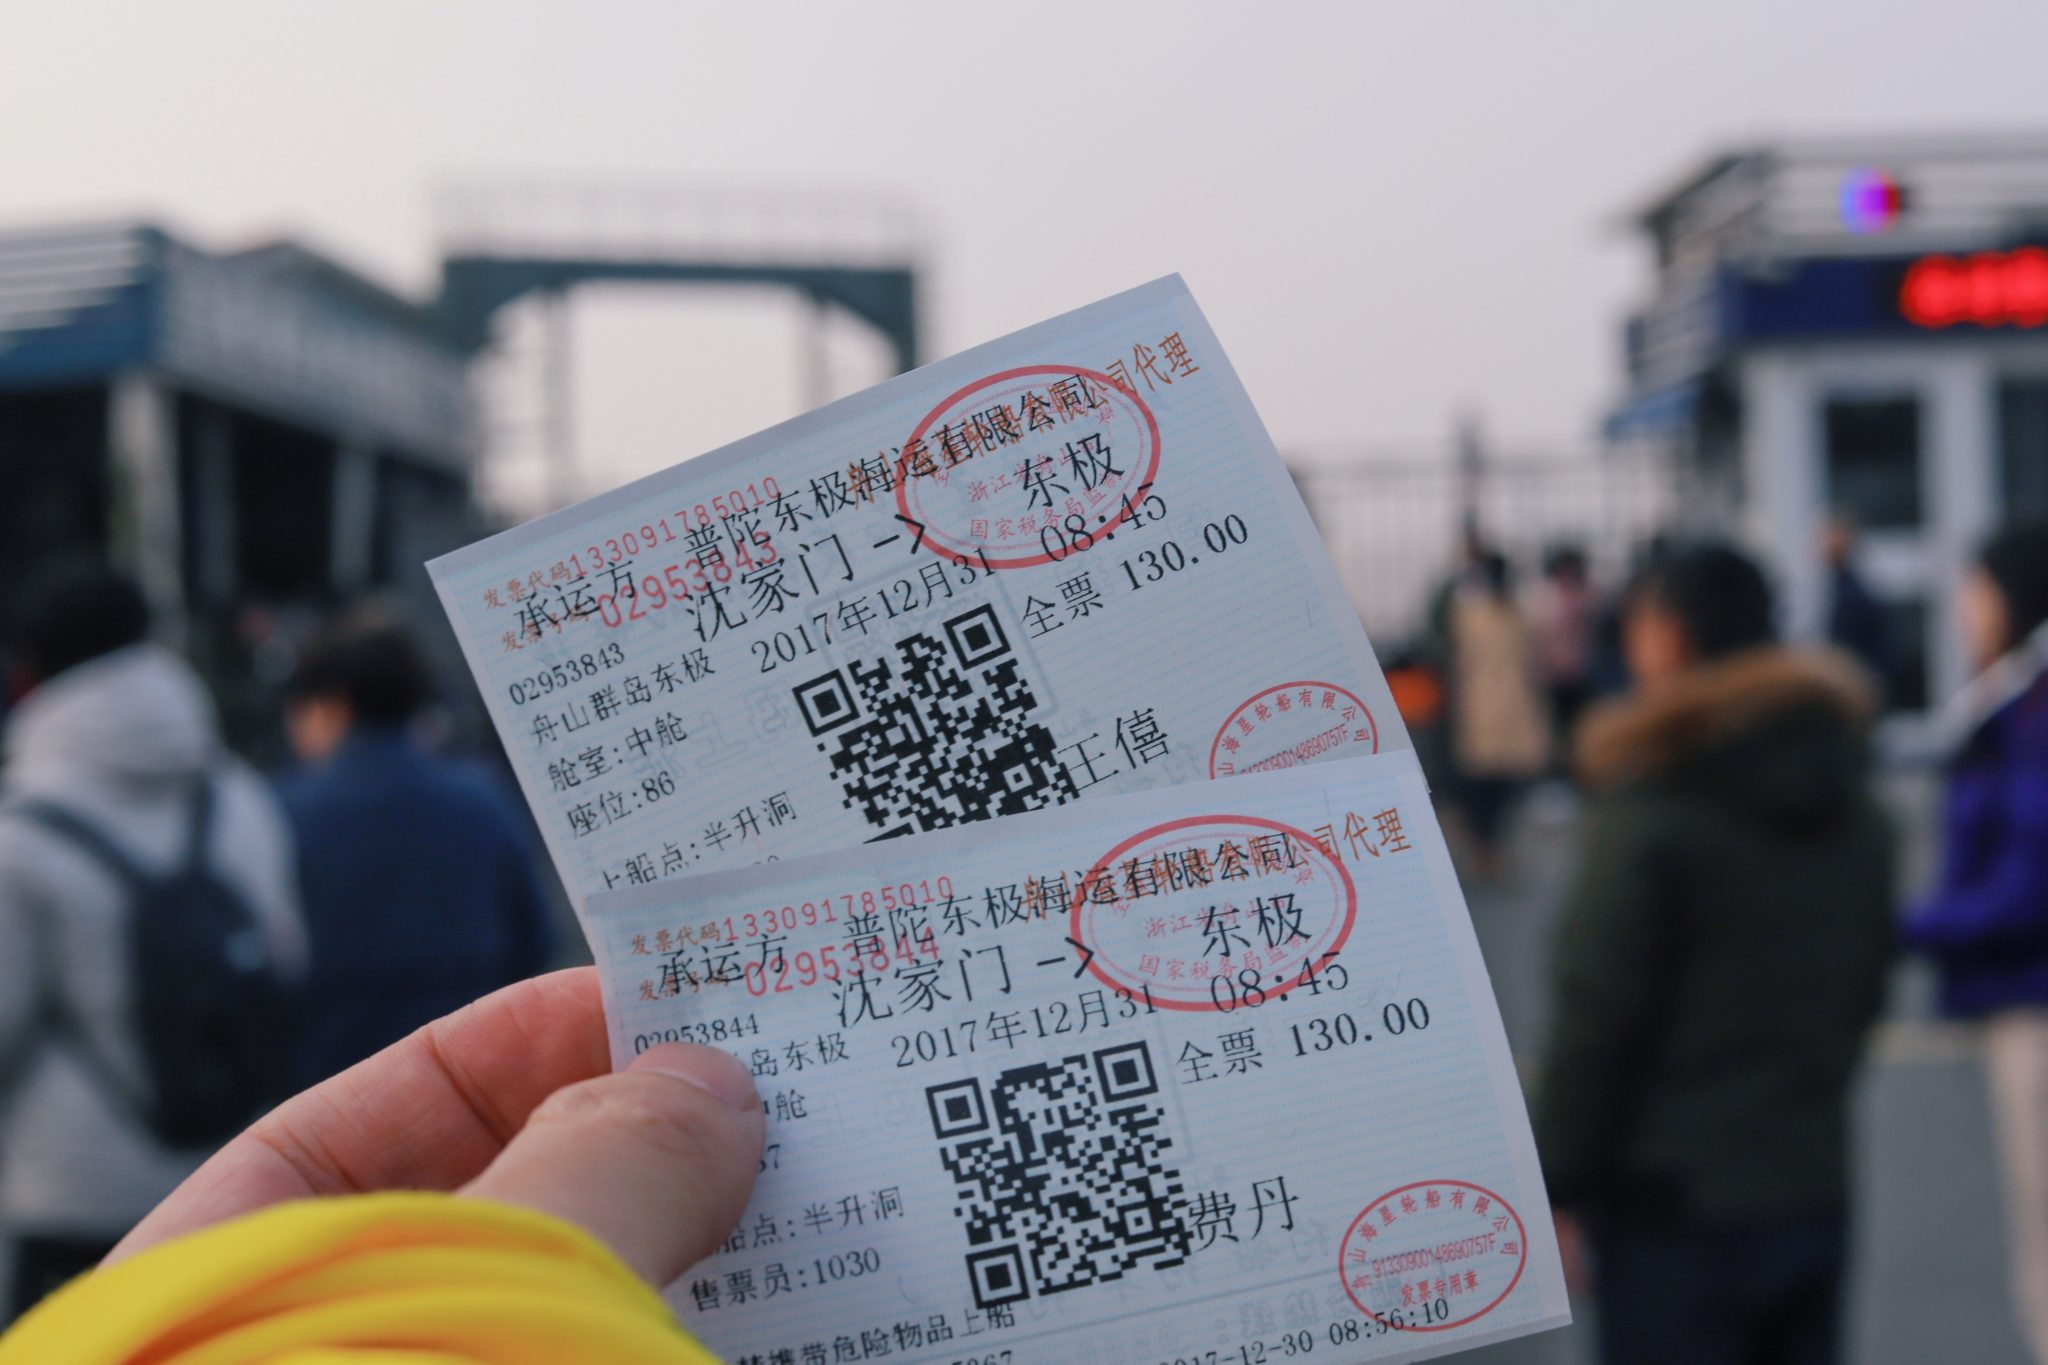 Event ticketing tips